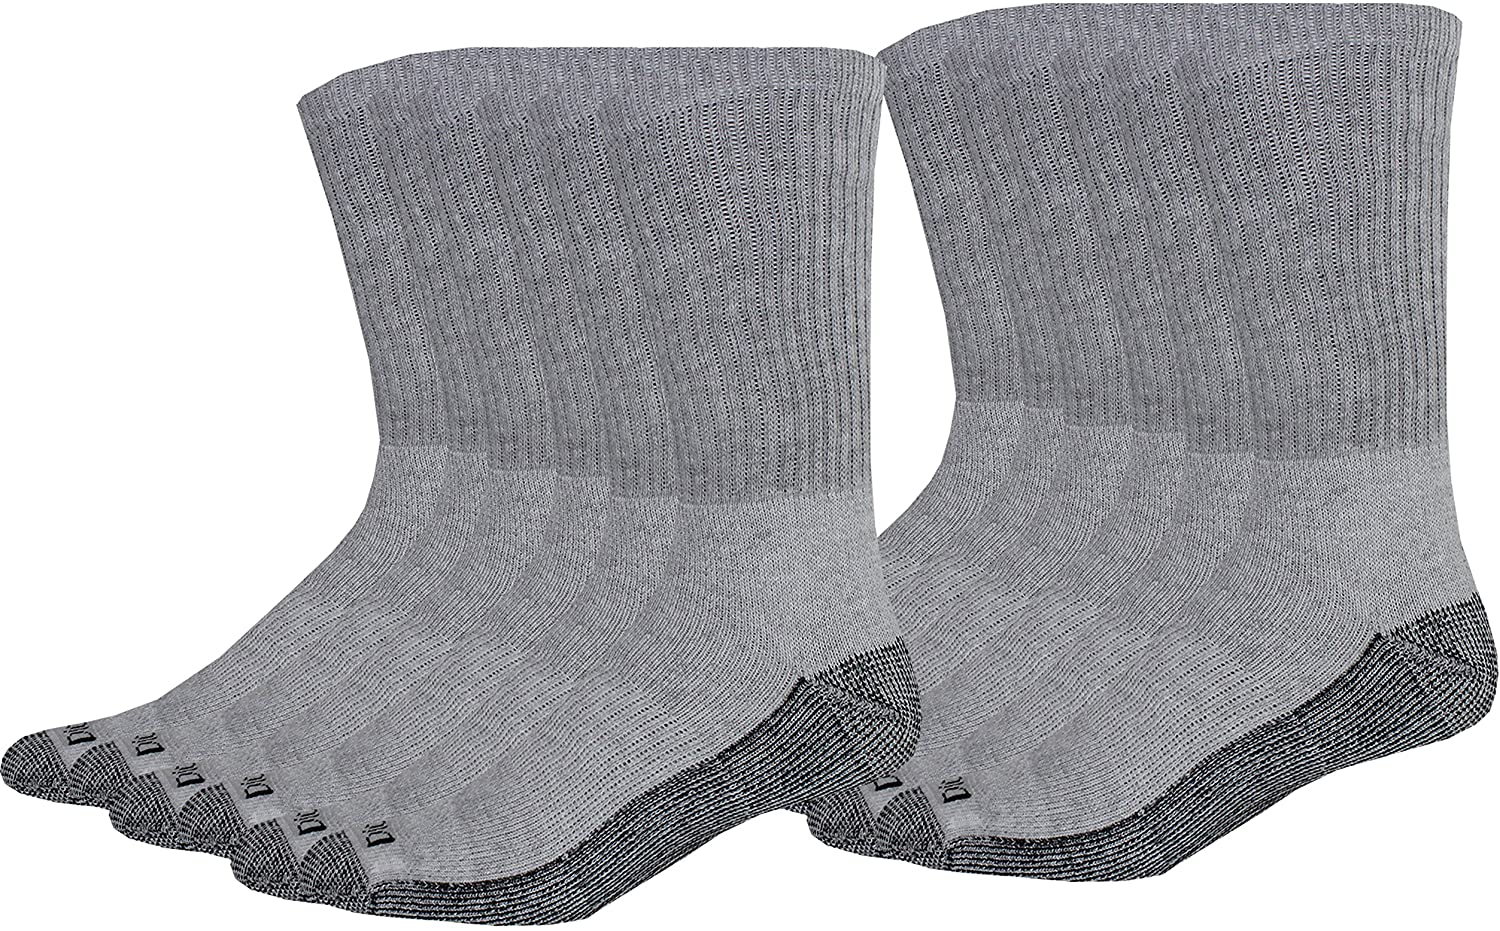 Dickies Men's Dri-Tech Comfort Crew Socks, Grey, 12 Pair